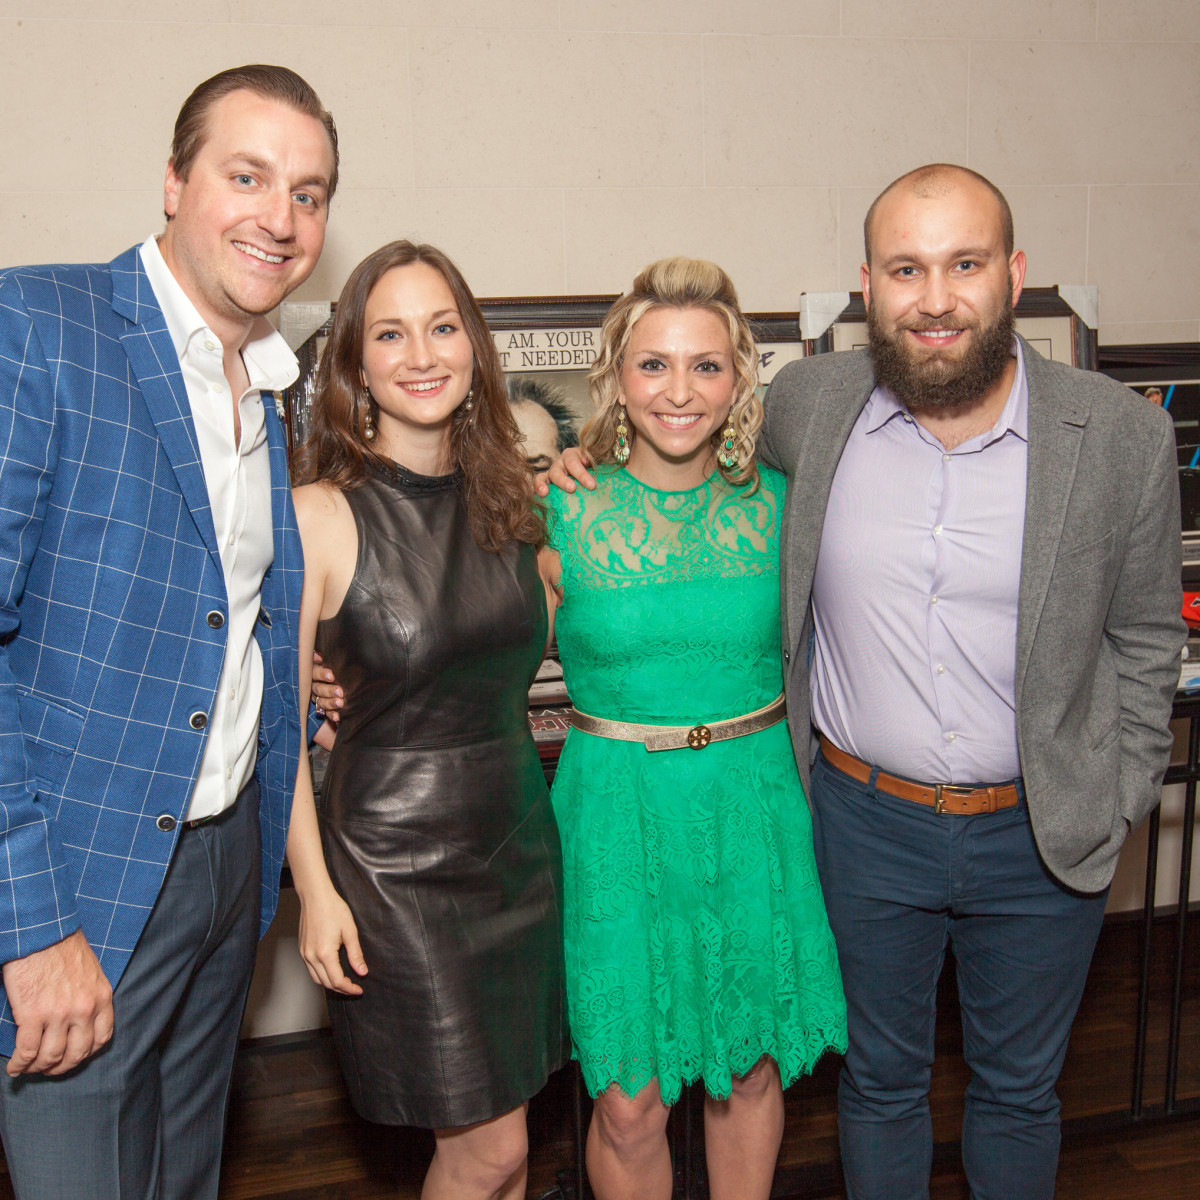 Houston, Homemade Hope's Spring Soiree, May 2016, Bruce Kish, Katherine Morrille, Nicole Ebert, Duncan Balcom